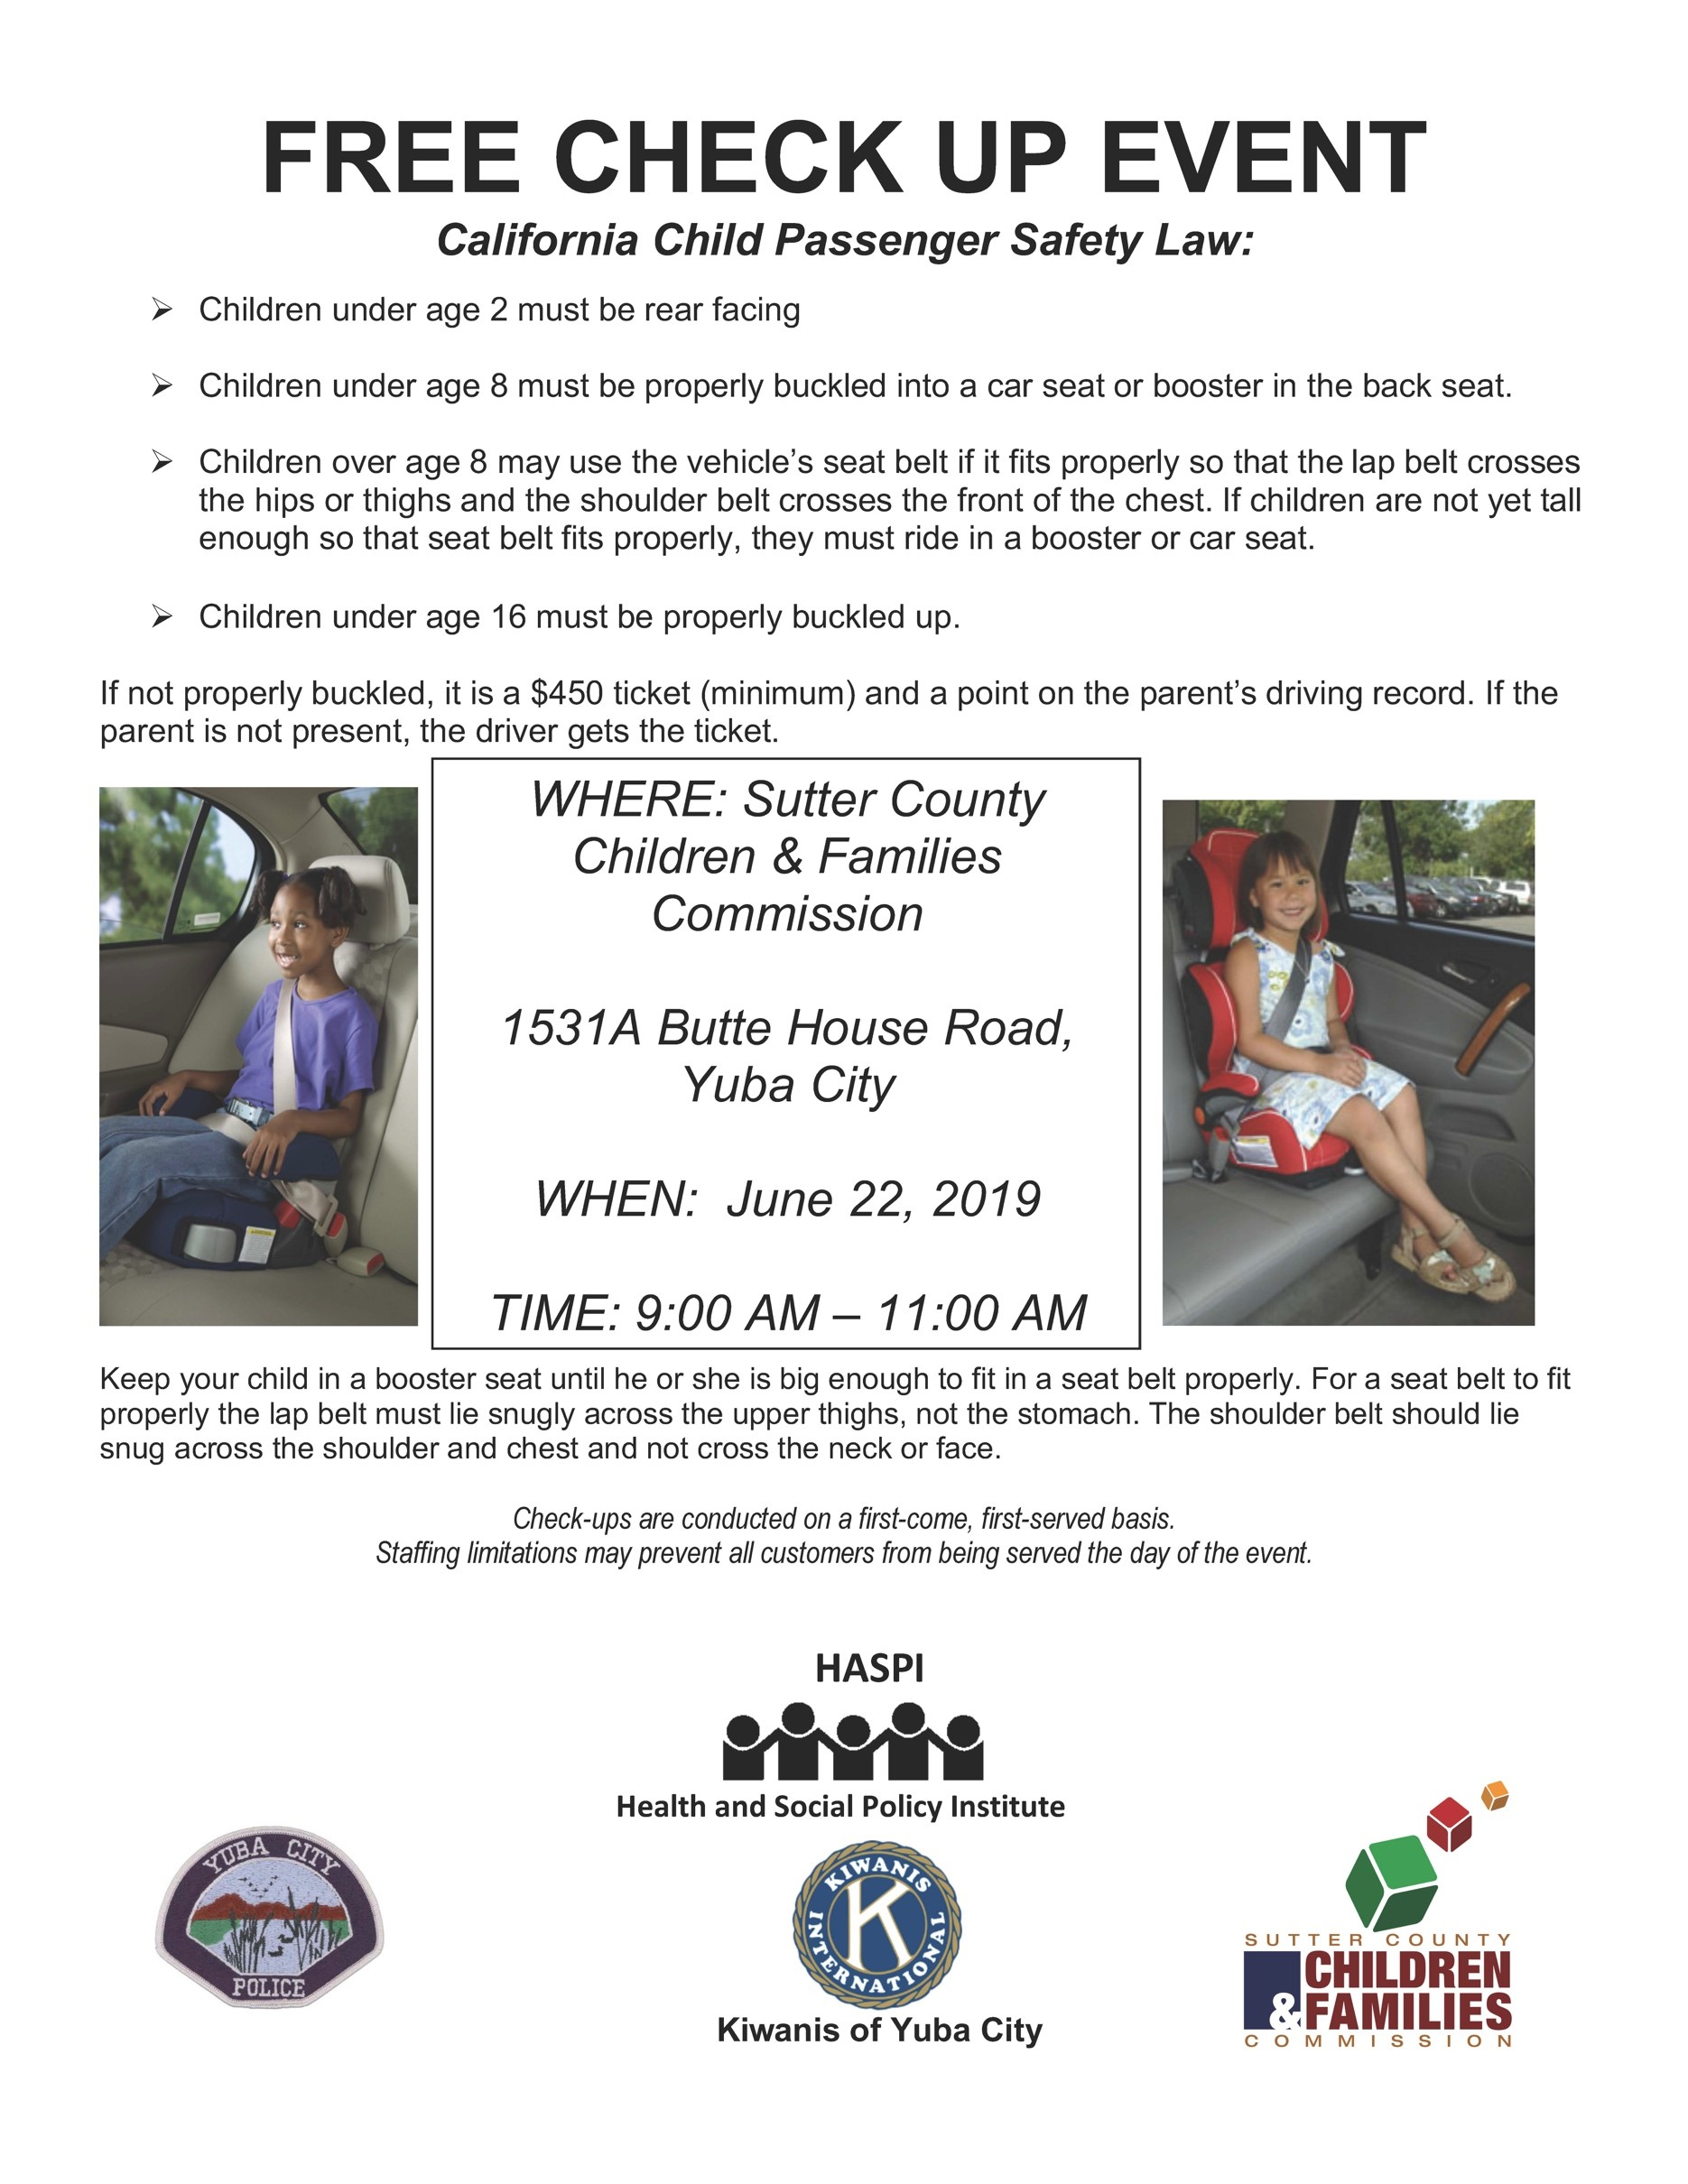 Free Car Seat Check Up Event Sutter County Children Families